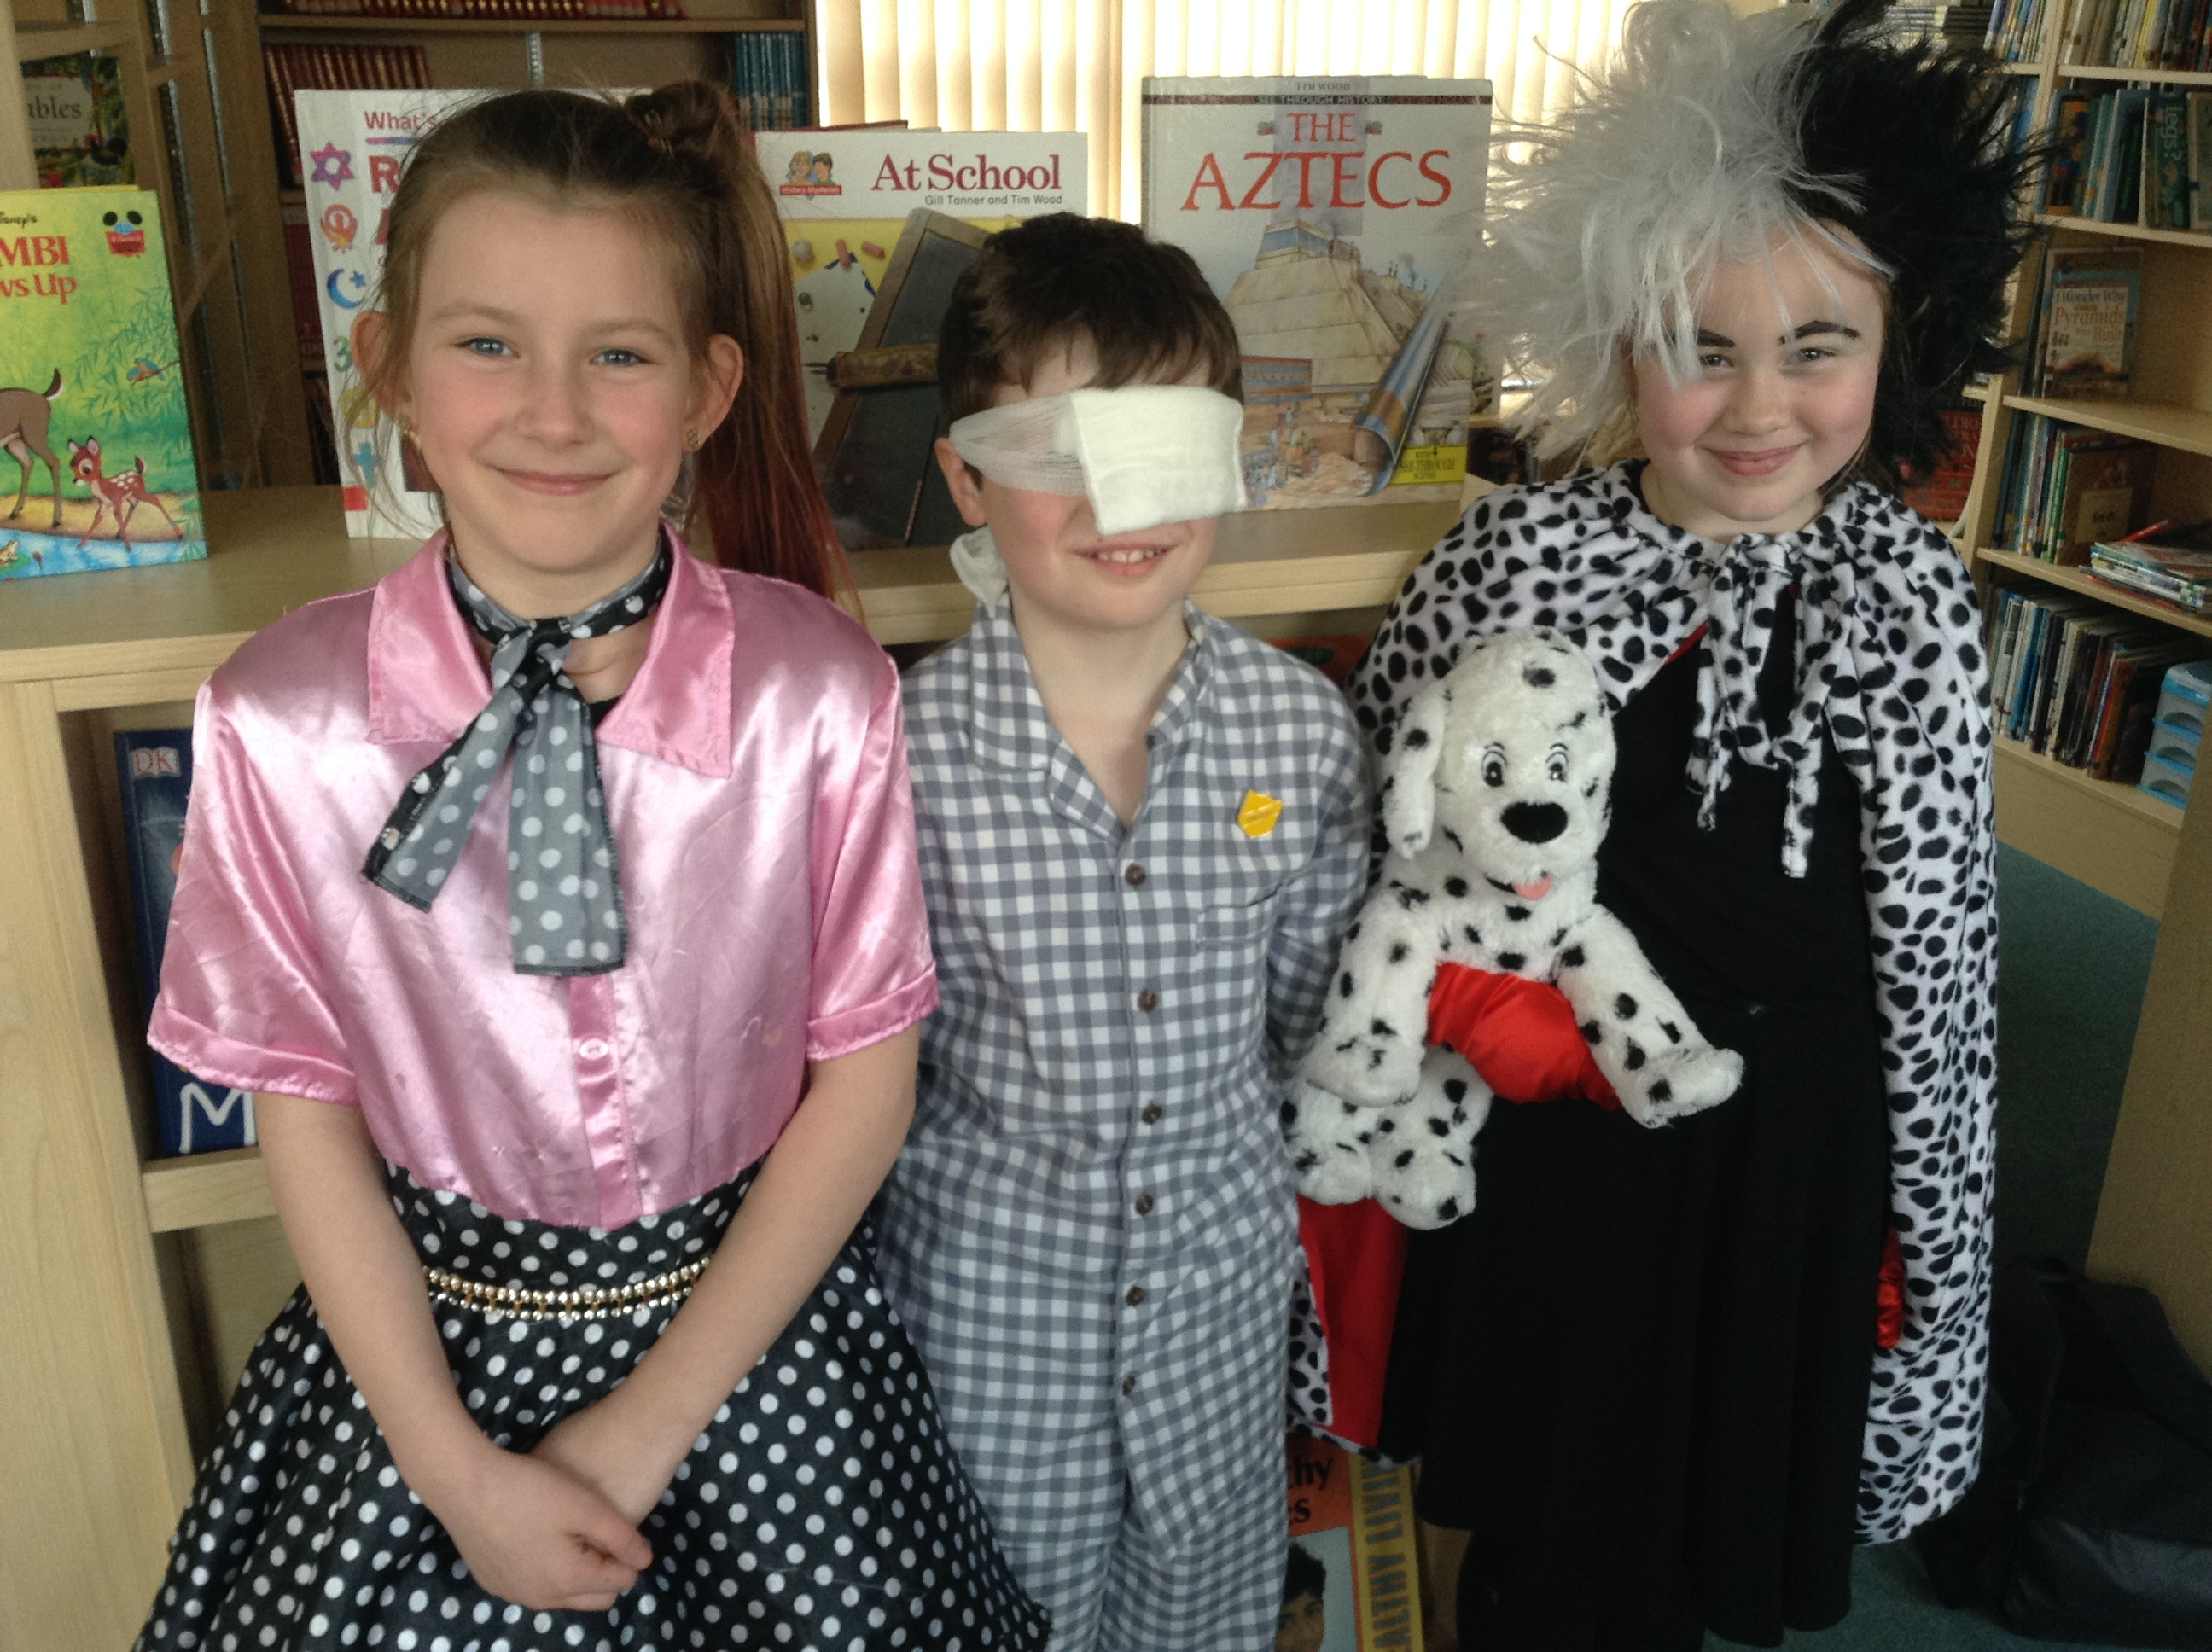 Our fancy dress competition winners!